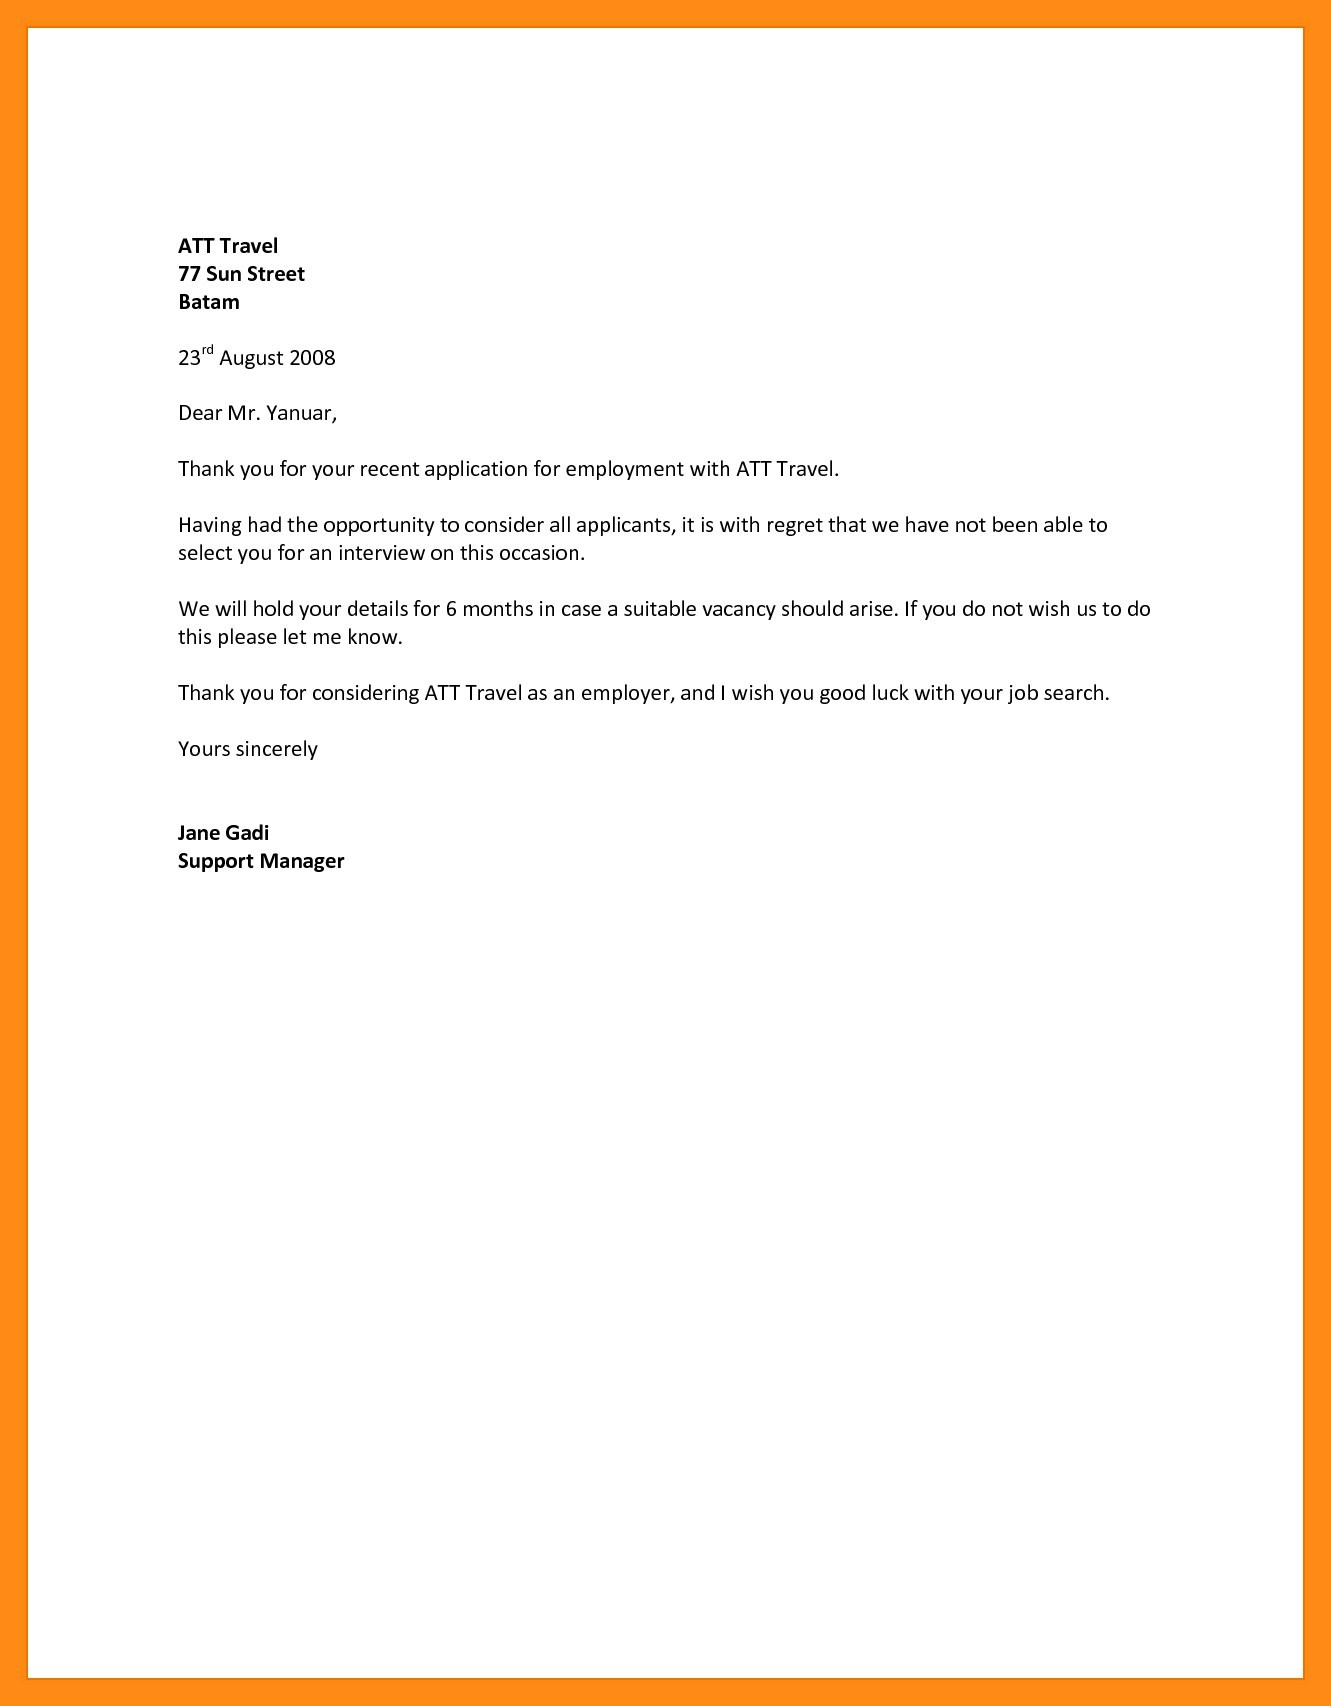 Employment Rejection Letter Template - Decline Letter Sample Invitation Letter format Sample